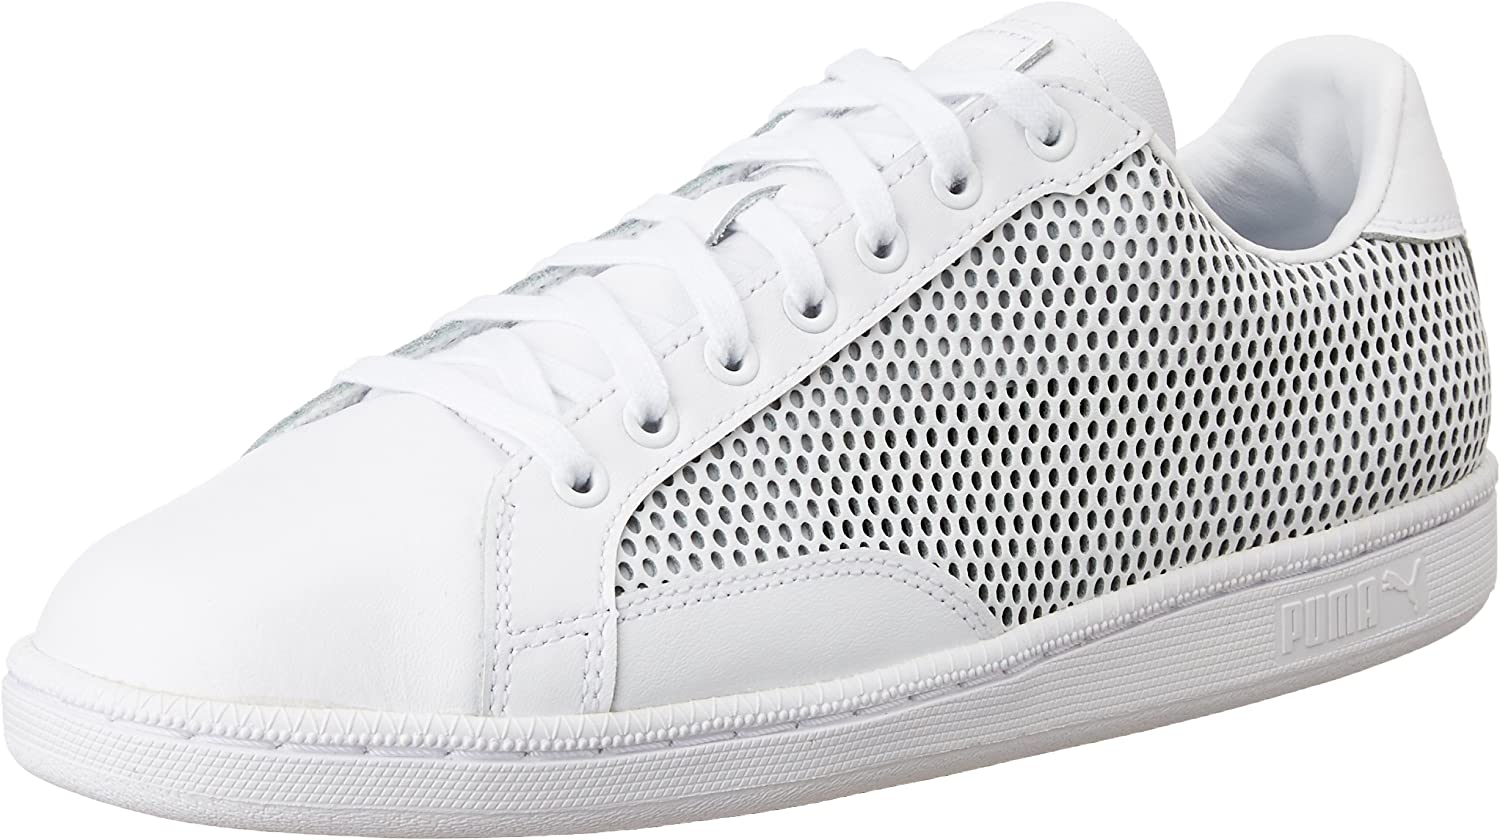 PUMA Match 74 Summer Shade, Unisex Adults' Low-Top Sneakers Black White